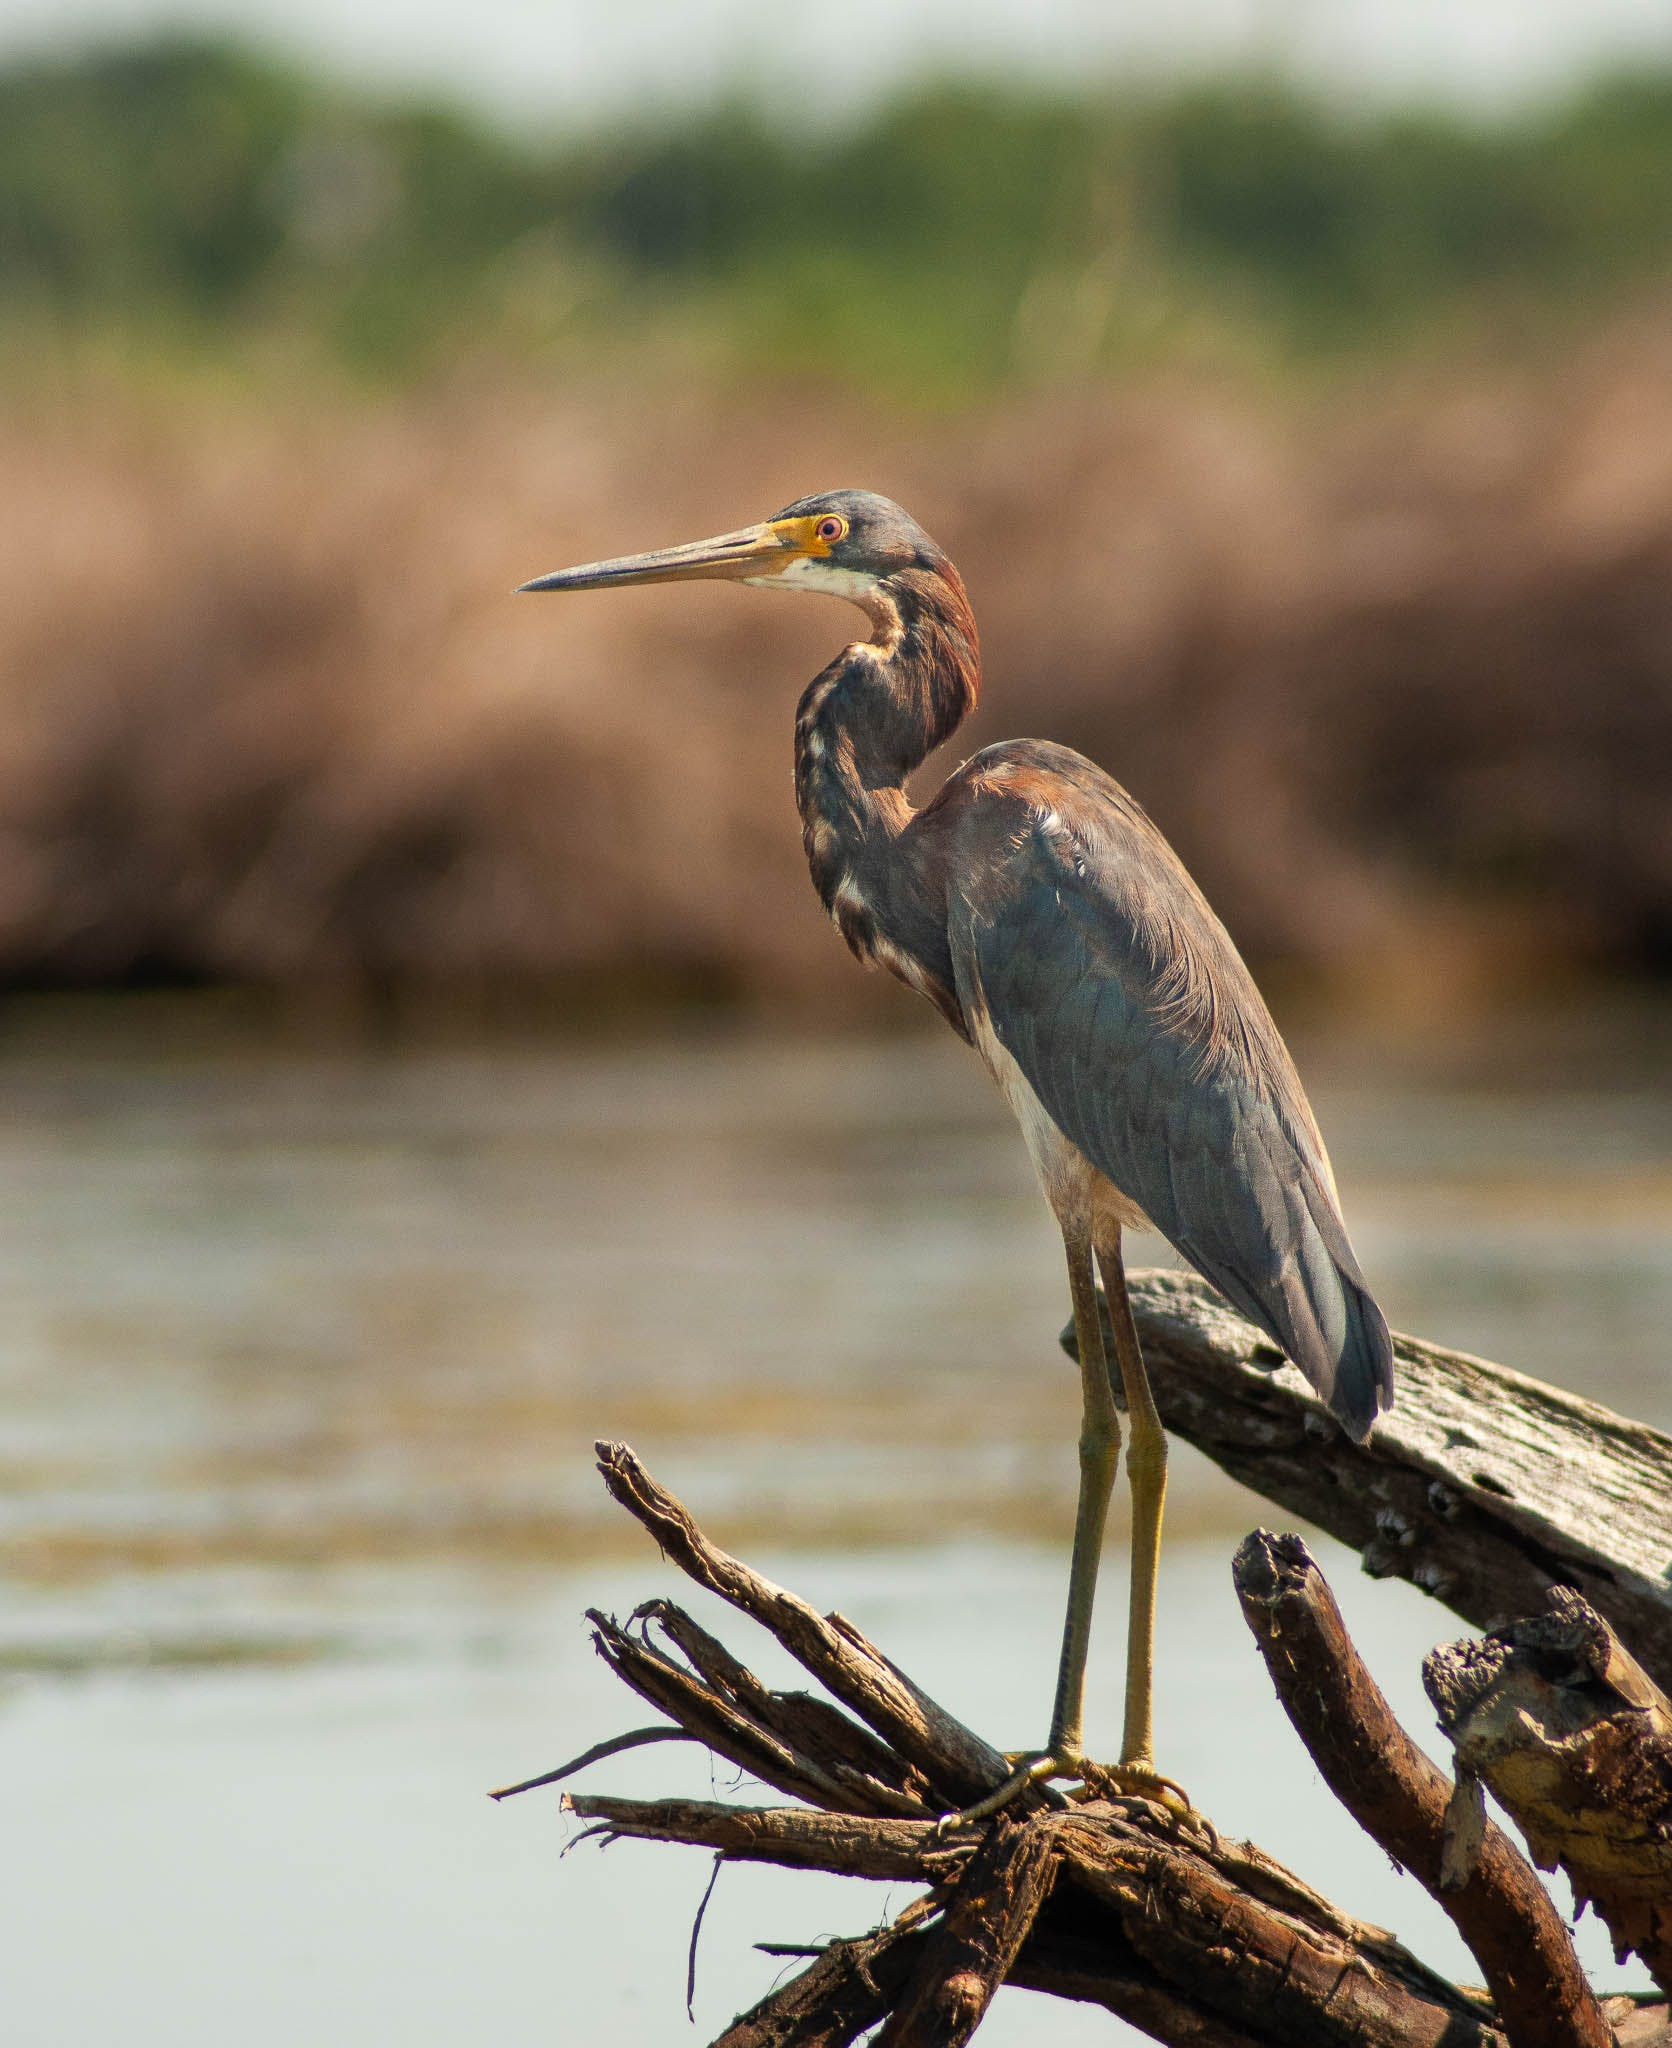 birding louisiana, birding new orleans, birds new orleans, new , new orleans, kayak, kayak tours, kayak swamp tours, kayaking new orleans, new orleans kayak tours